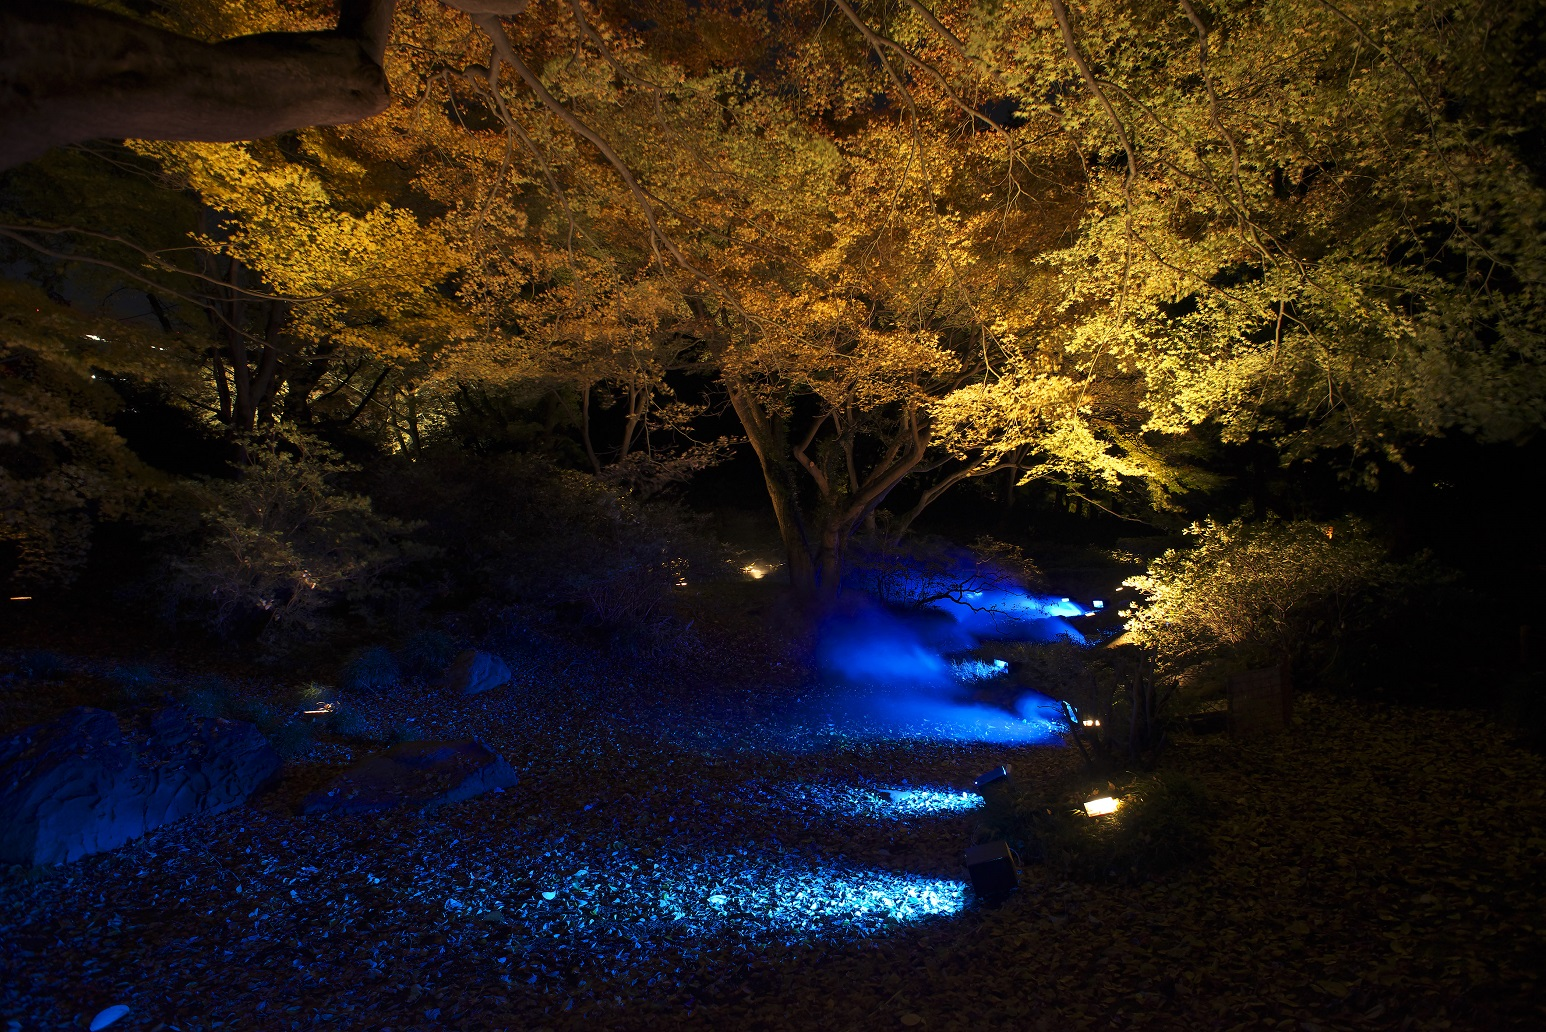 六義園 紅葉ライトアップ Rikugien autumn lighting (article by amuzen)